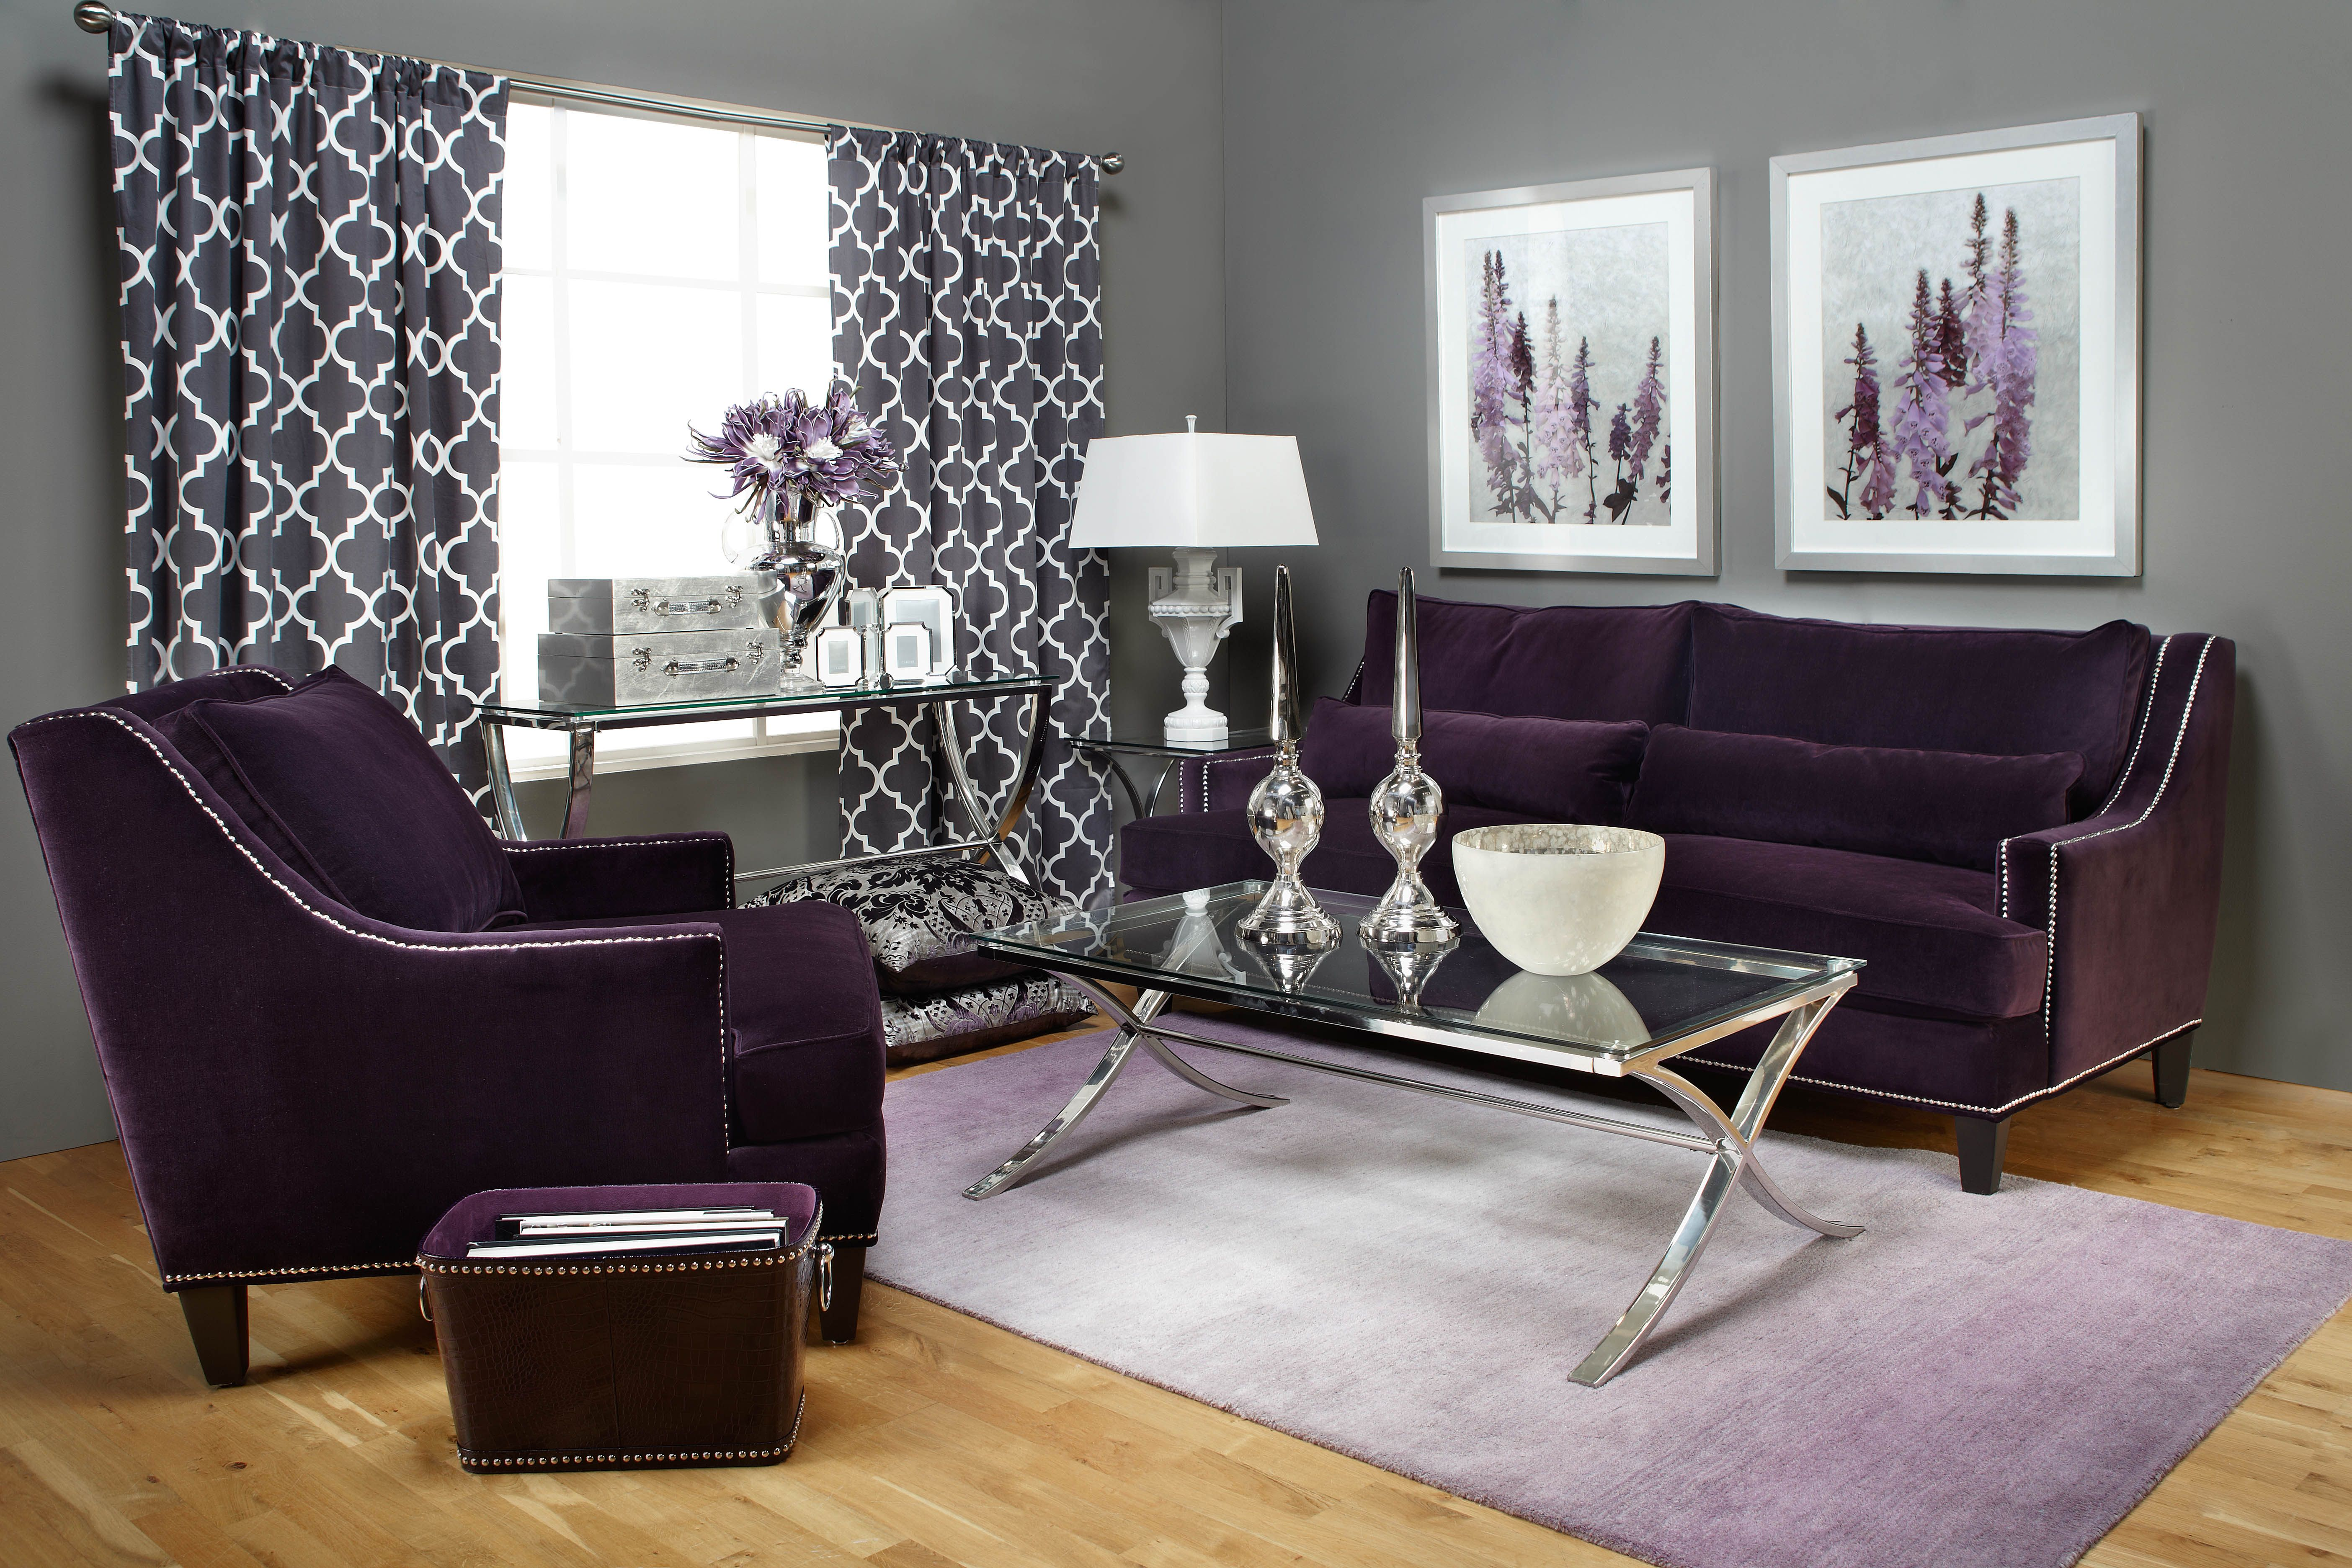 Z Gallerie Living Room | Bedroom and Living Room Image Collections